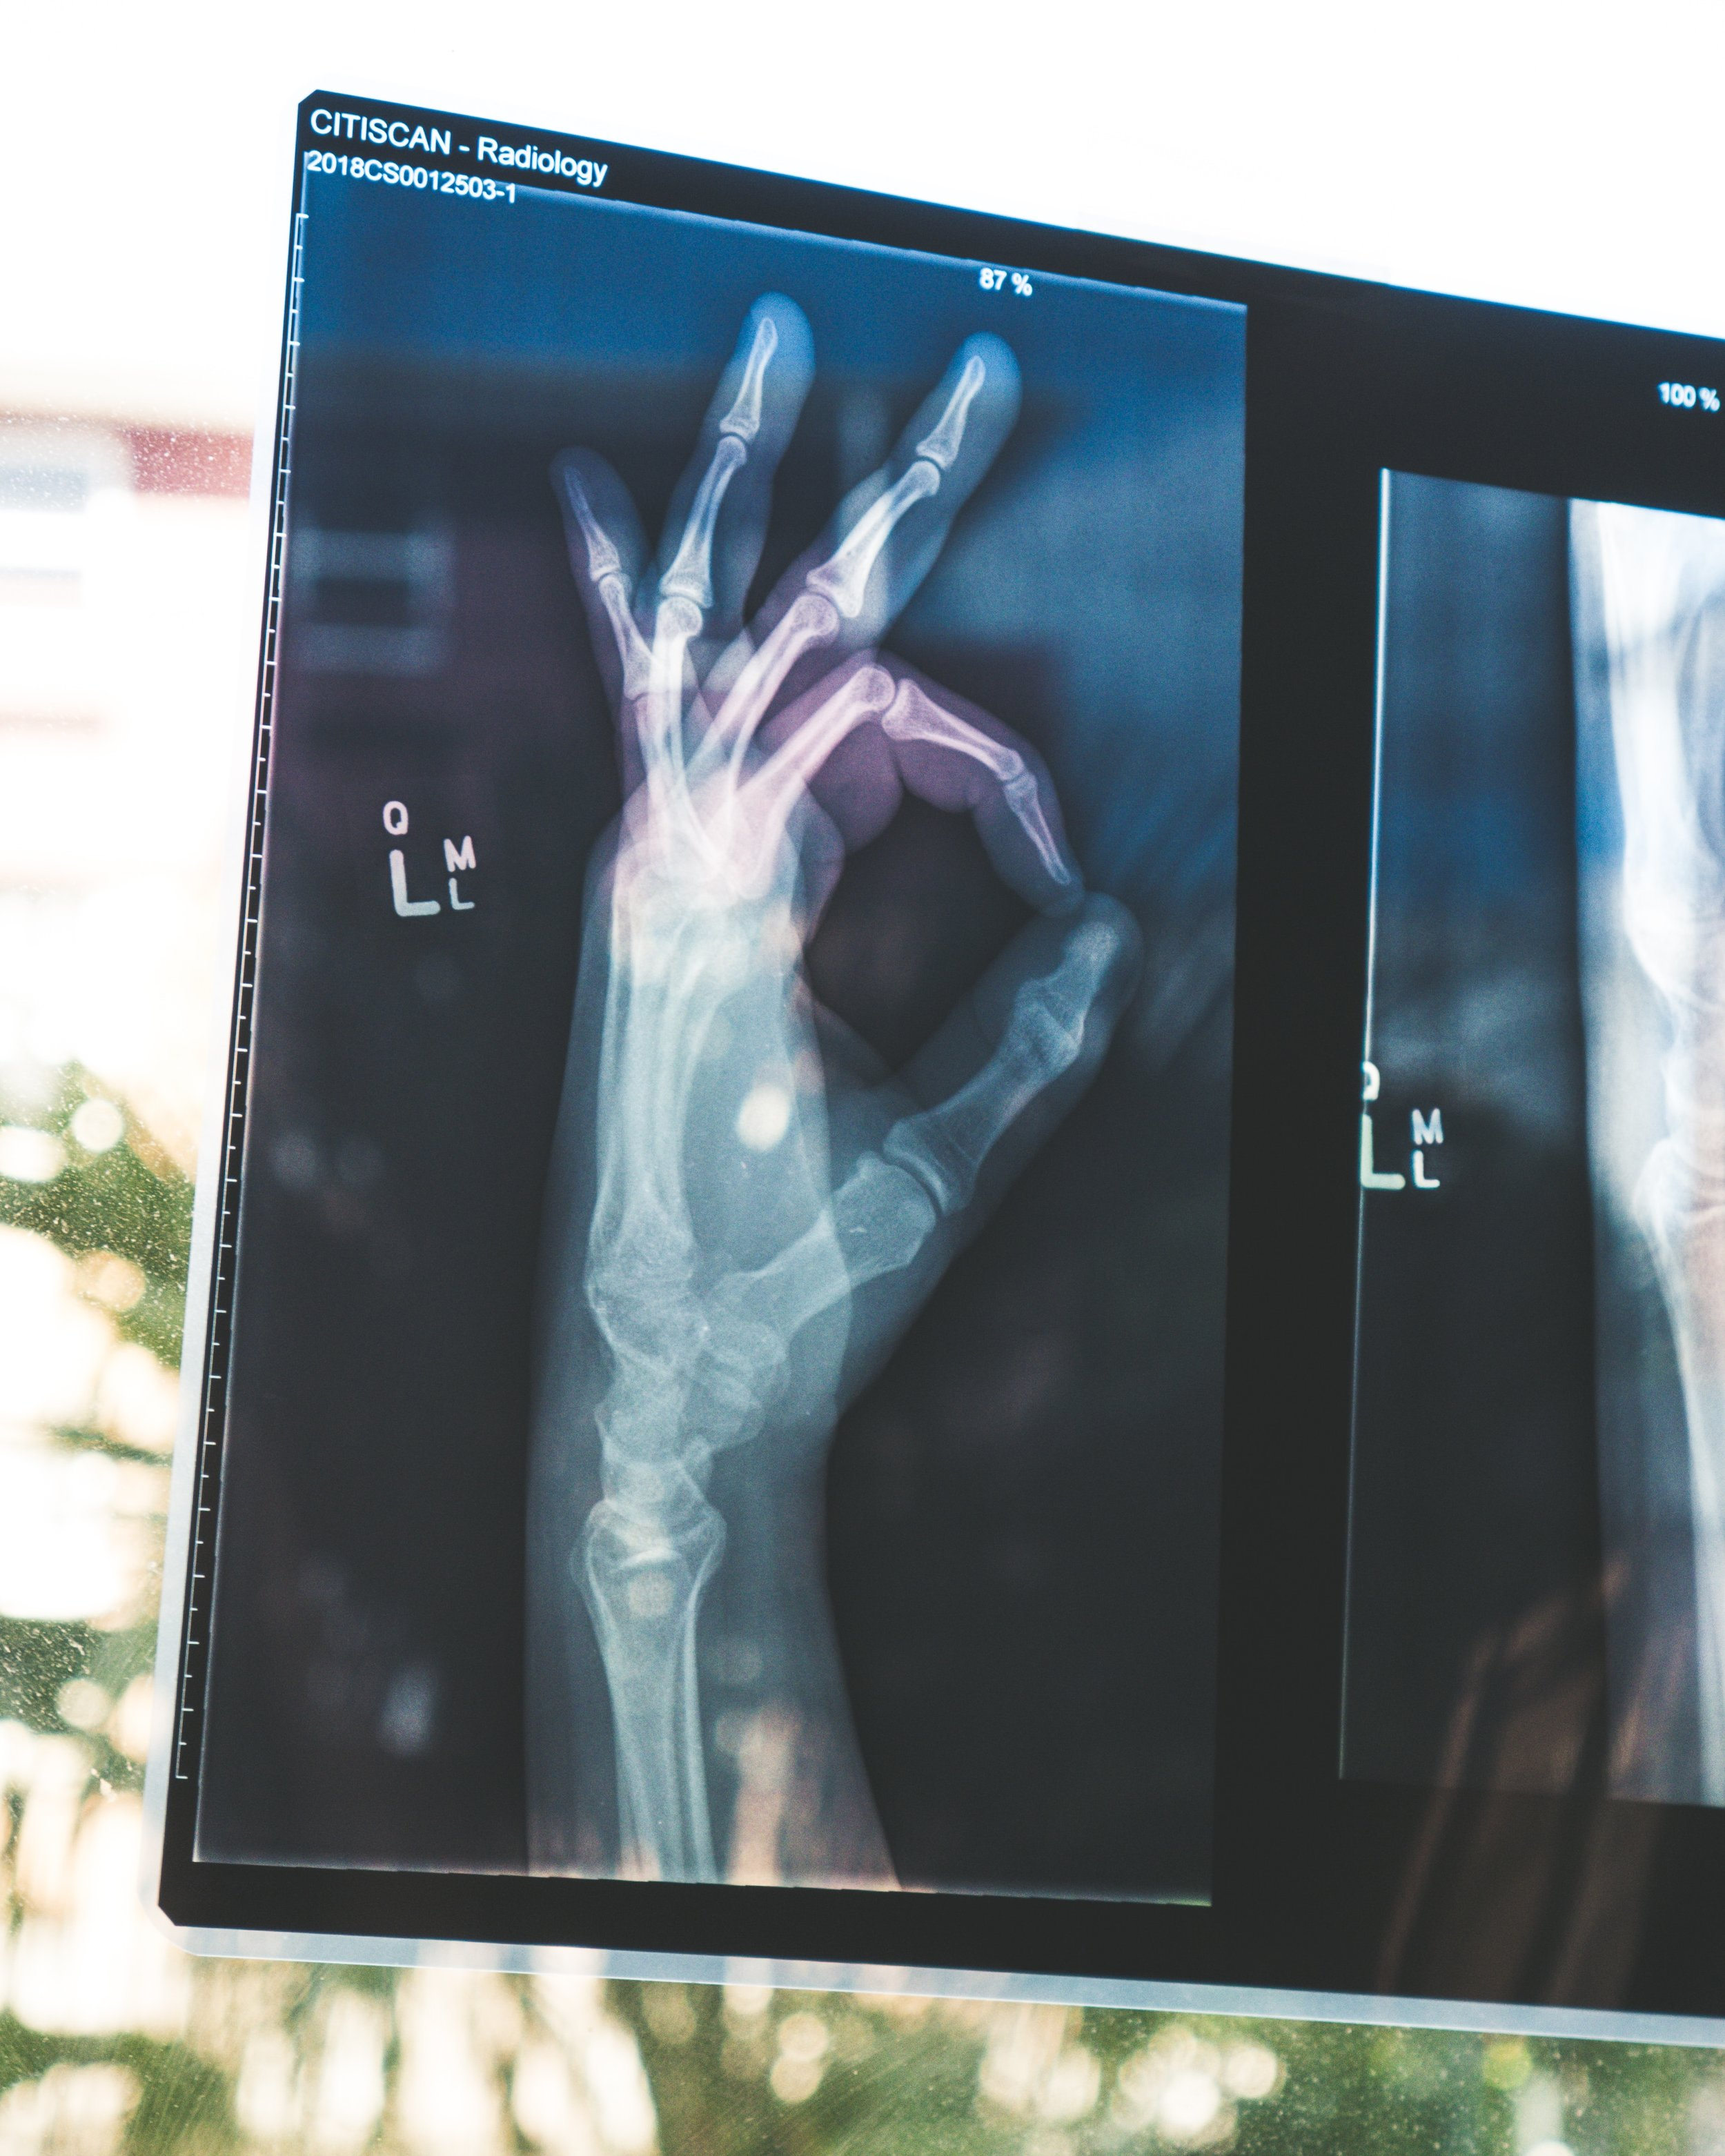 Wrist Fracture Recovery